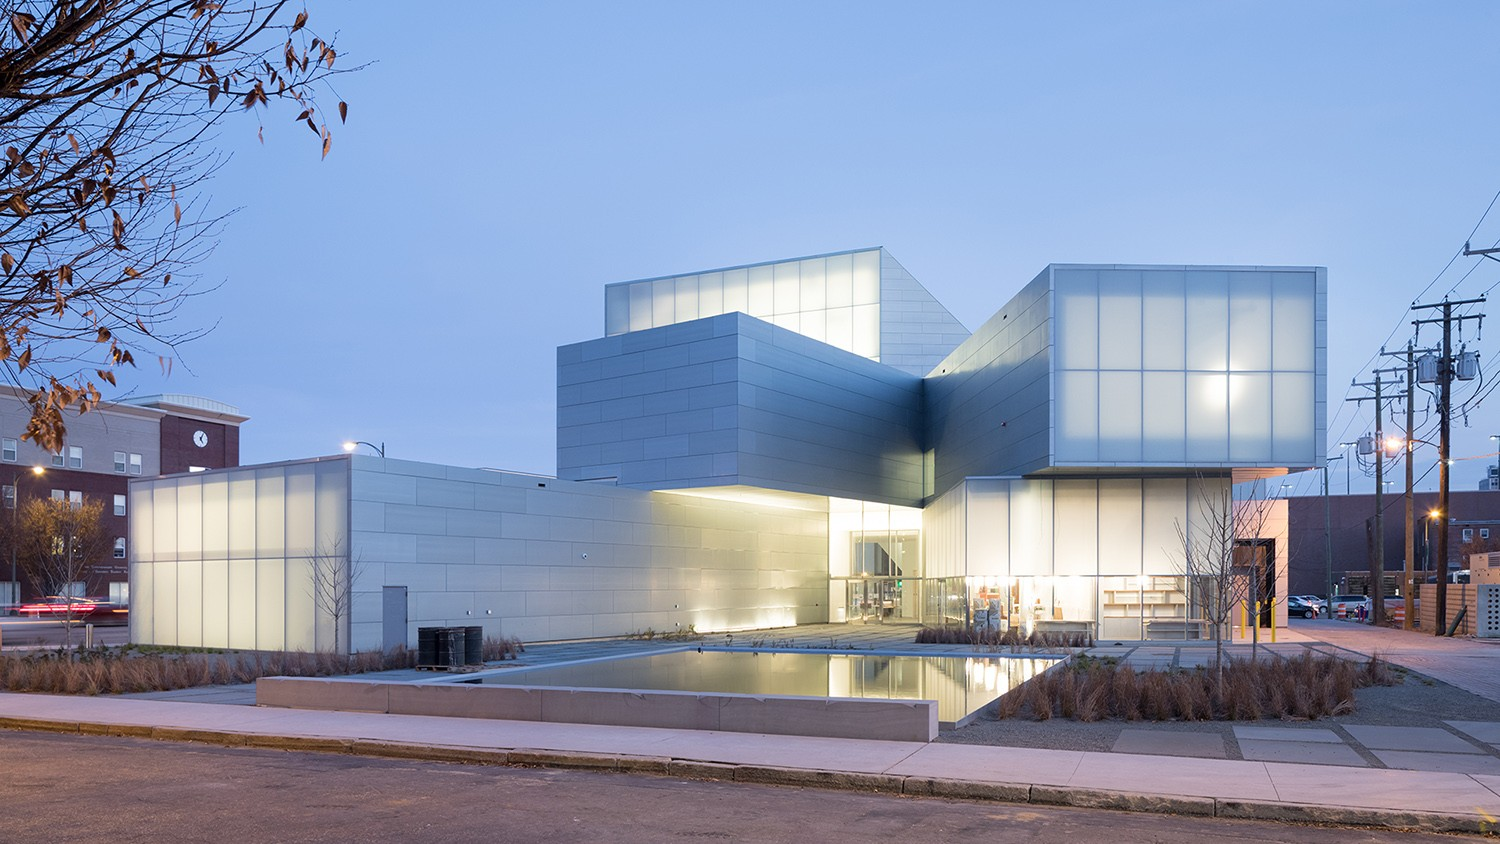 https://stevenholl.sfo2.digitaloceanspaces.com/uploads/projects/project-images/IwanBaan_ICA_VCU17-12SHA 4419_WH.jpg